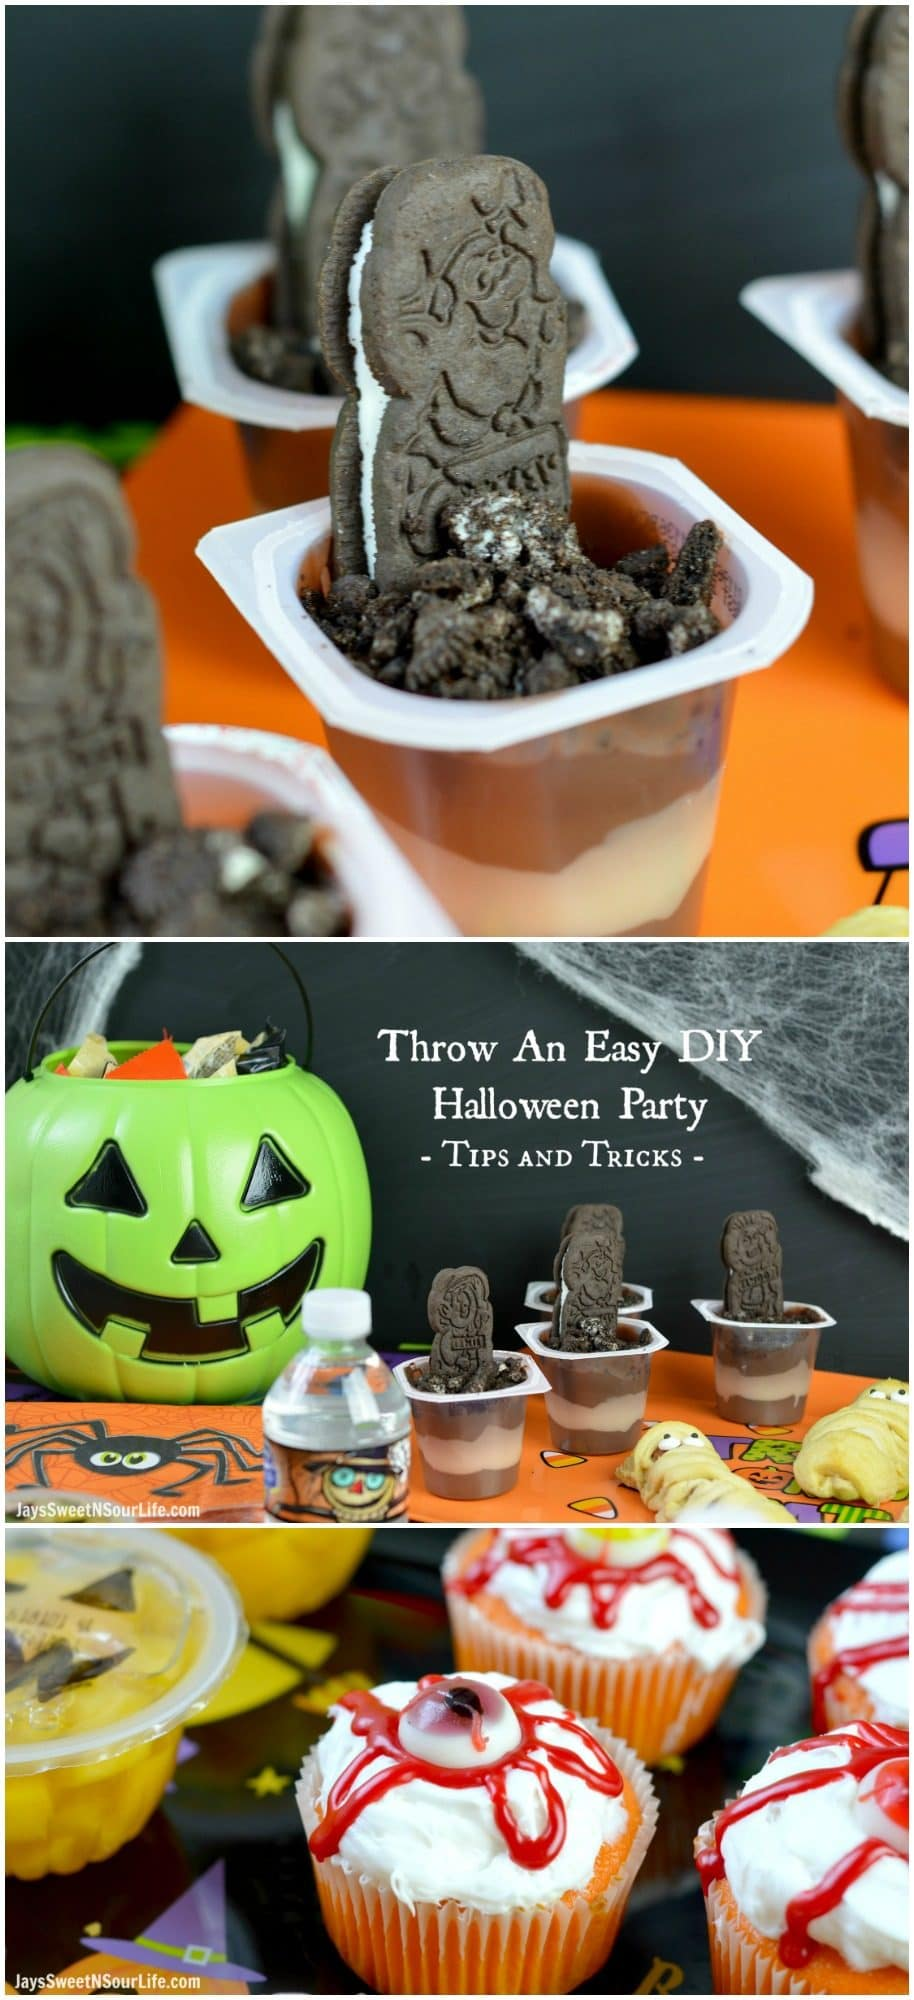 poise-halloween-tips-and-tricks-pinterest